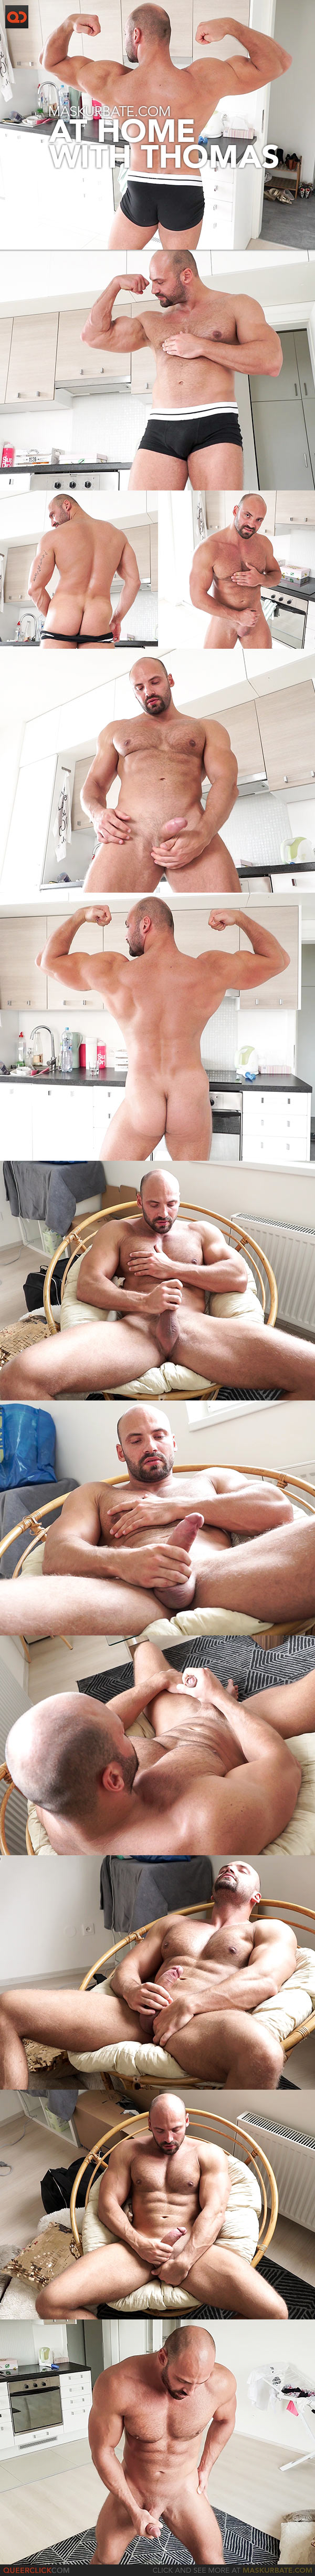 Maskurbate: At Home with Thomas